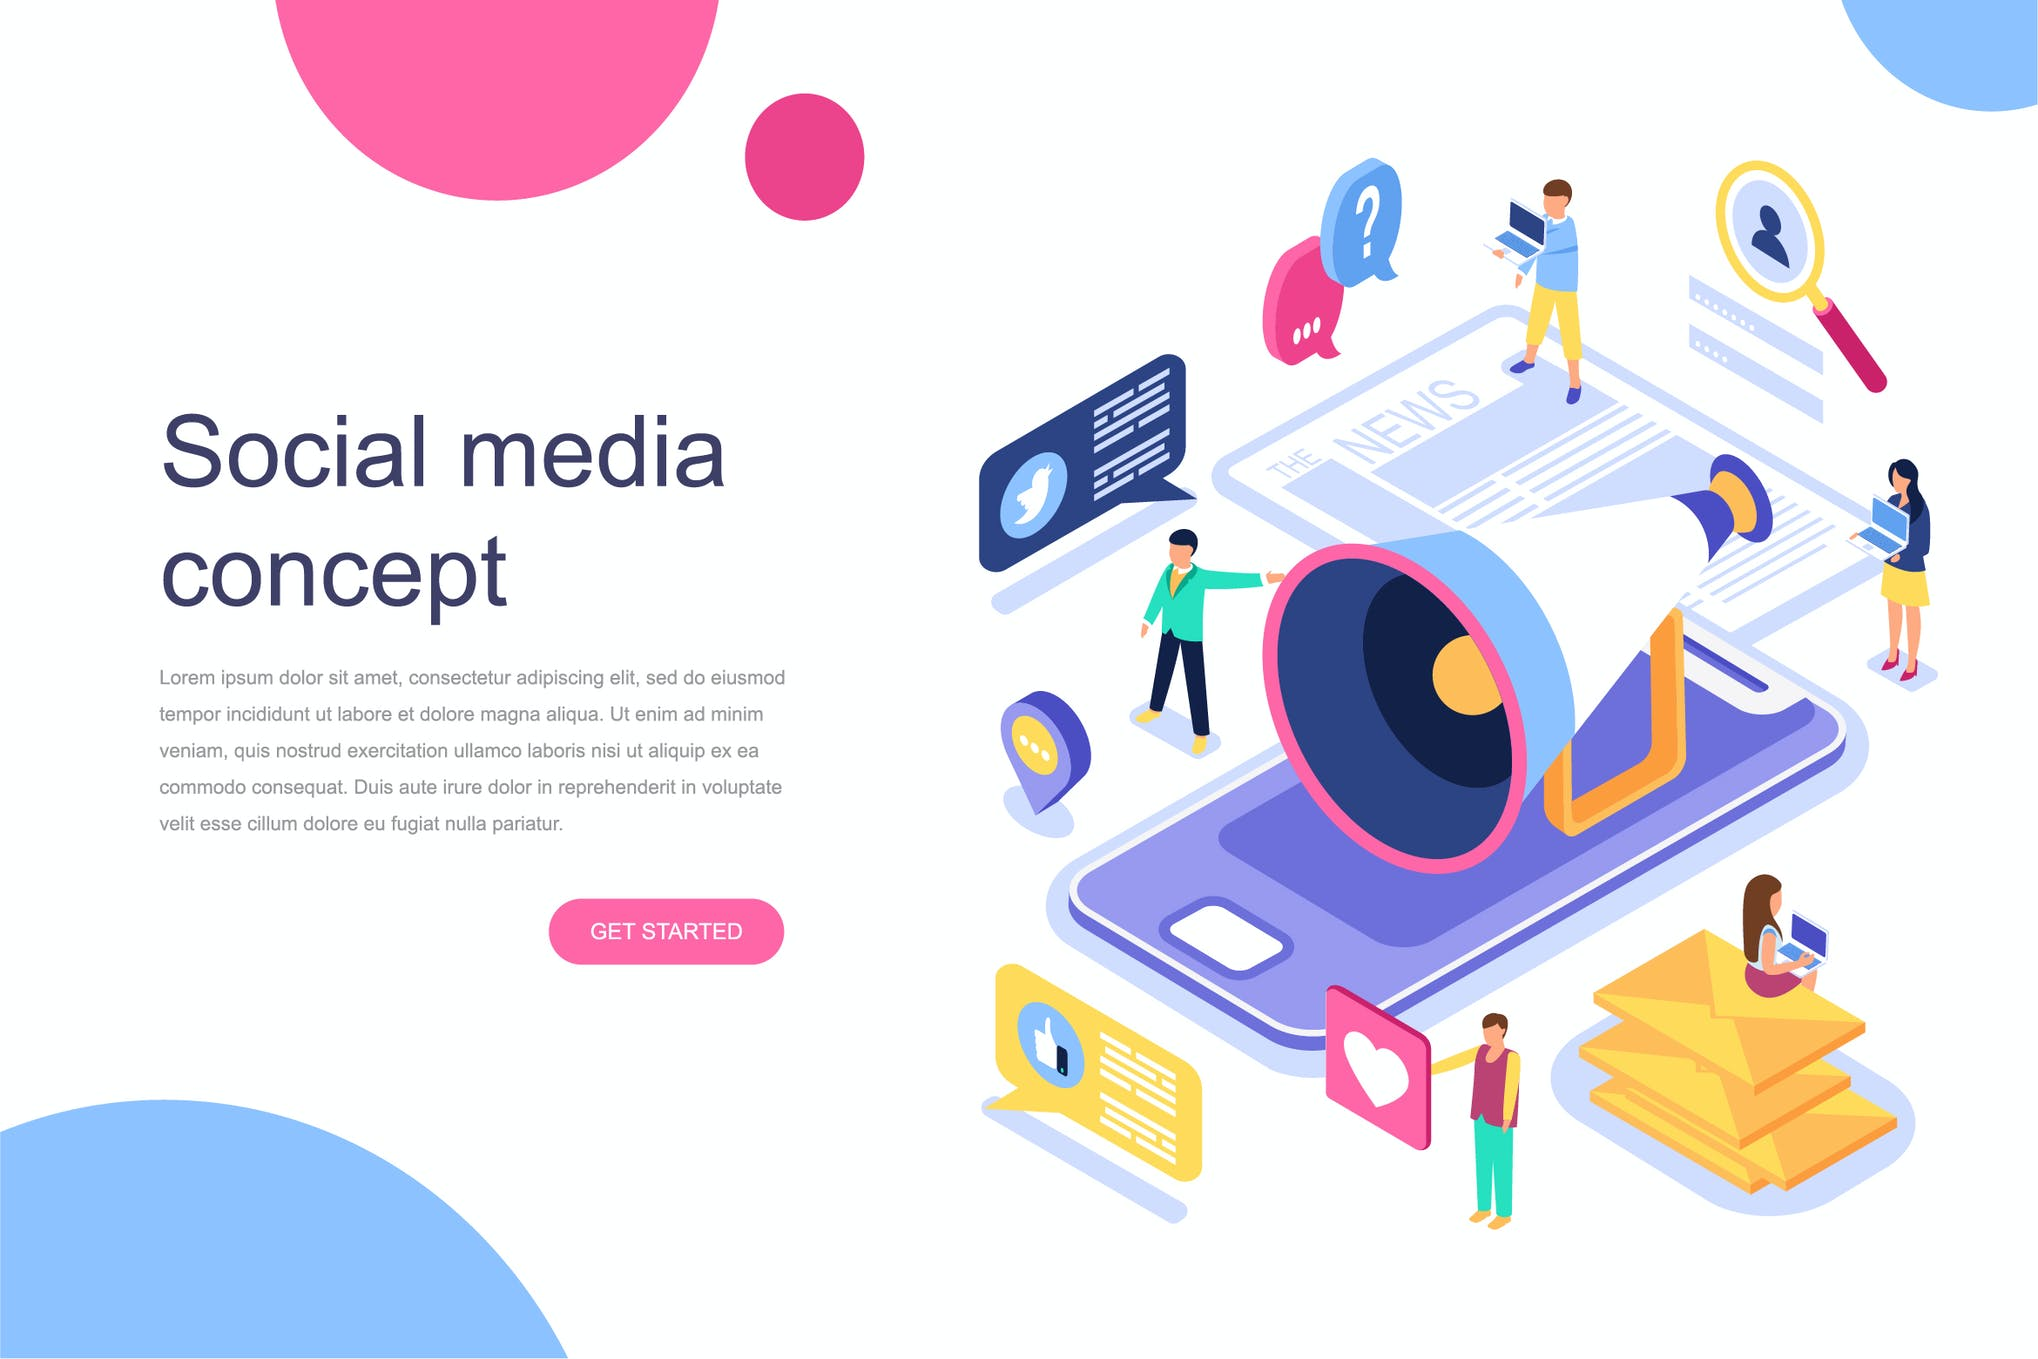 Social Media Isometric Concept By Alexdndz On Envato Elements